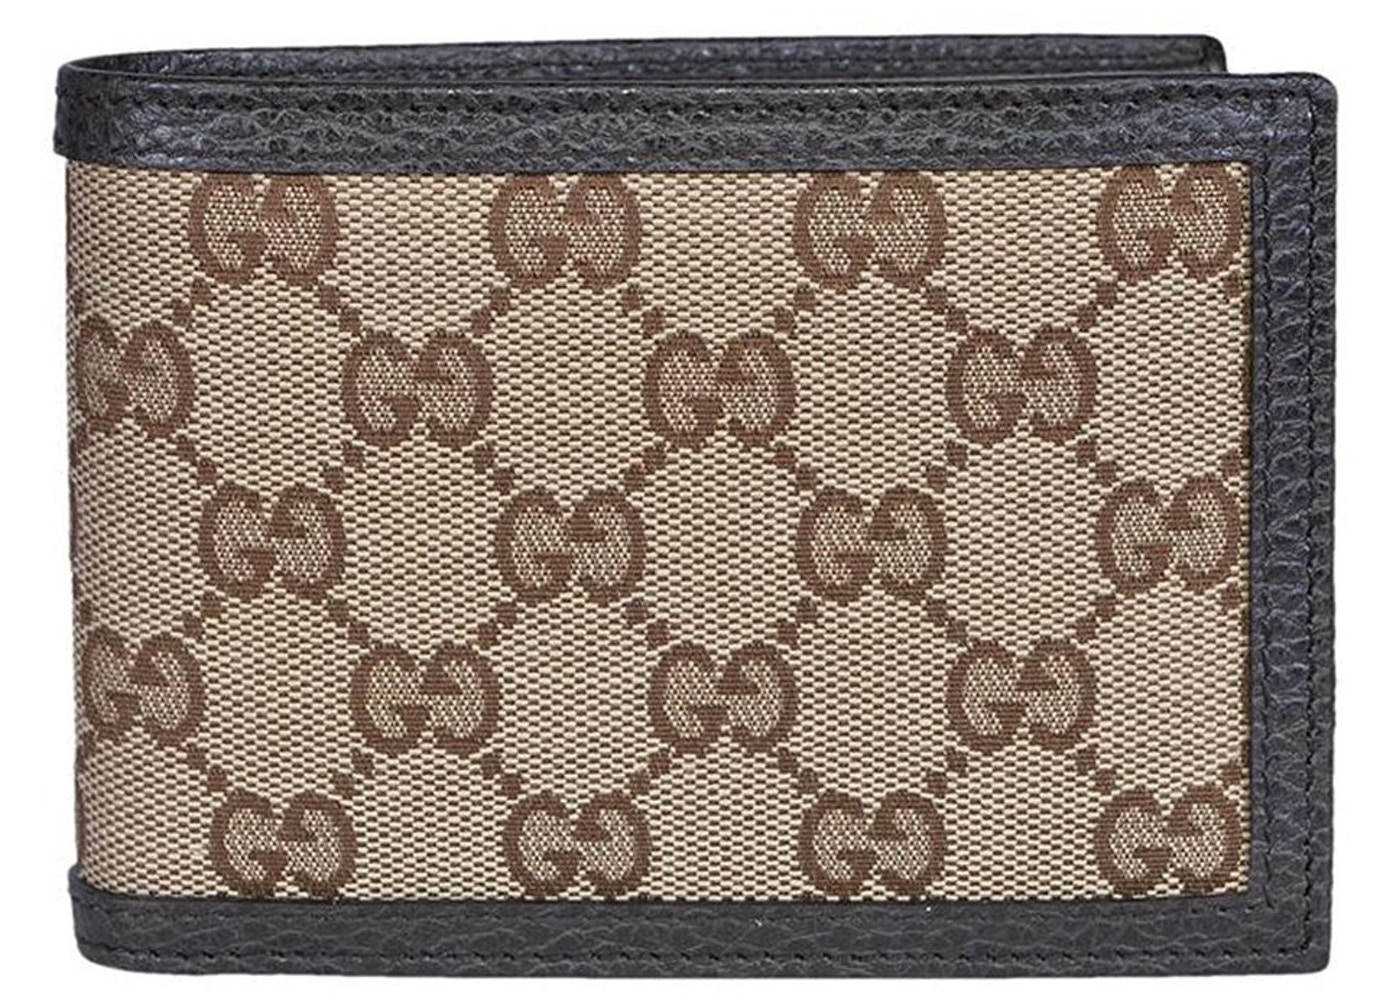 Gucci Bifold Wallet Gg Monogram Beige Ebony Use these free gucci pattern png #30320 for your personal projects or designs. gucci bifold wallet gg monogram beige ebony